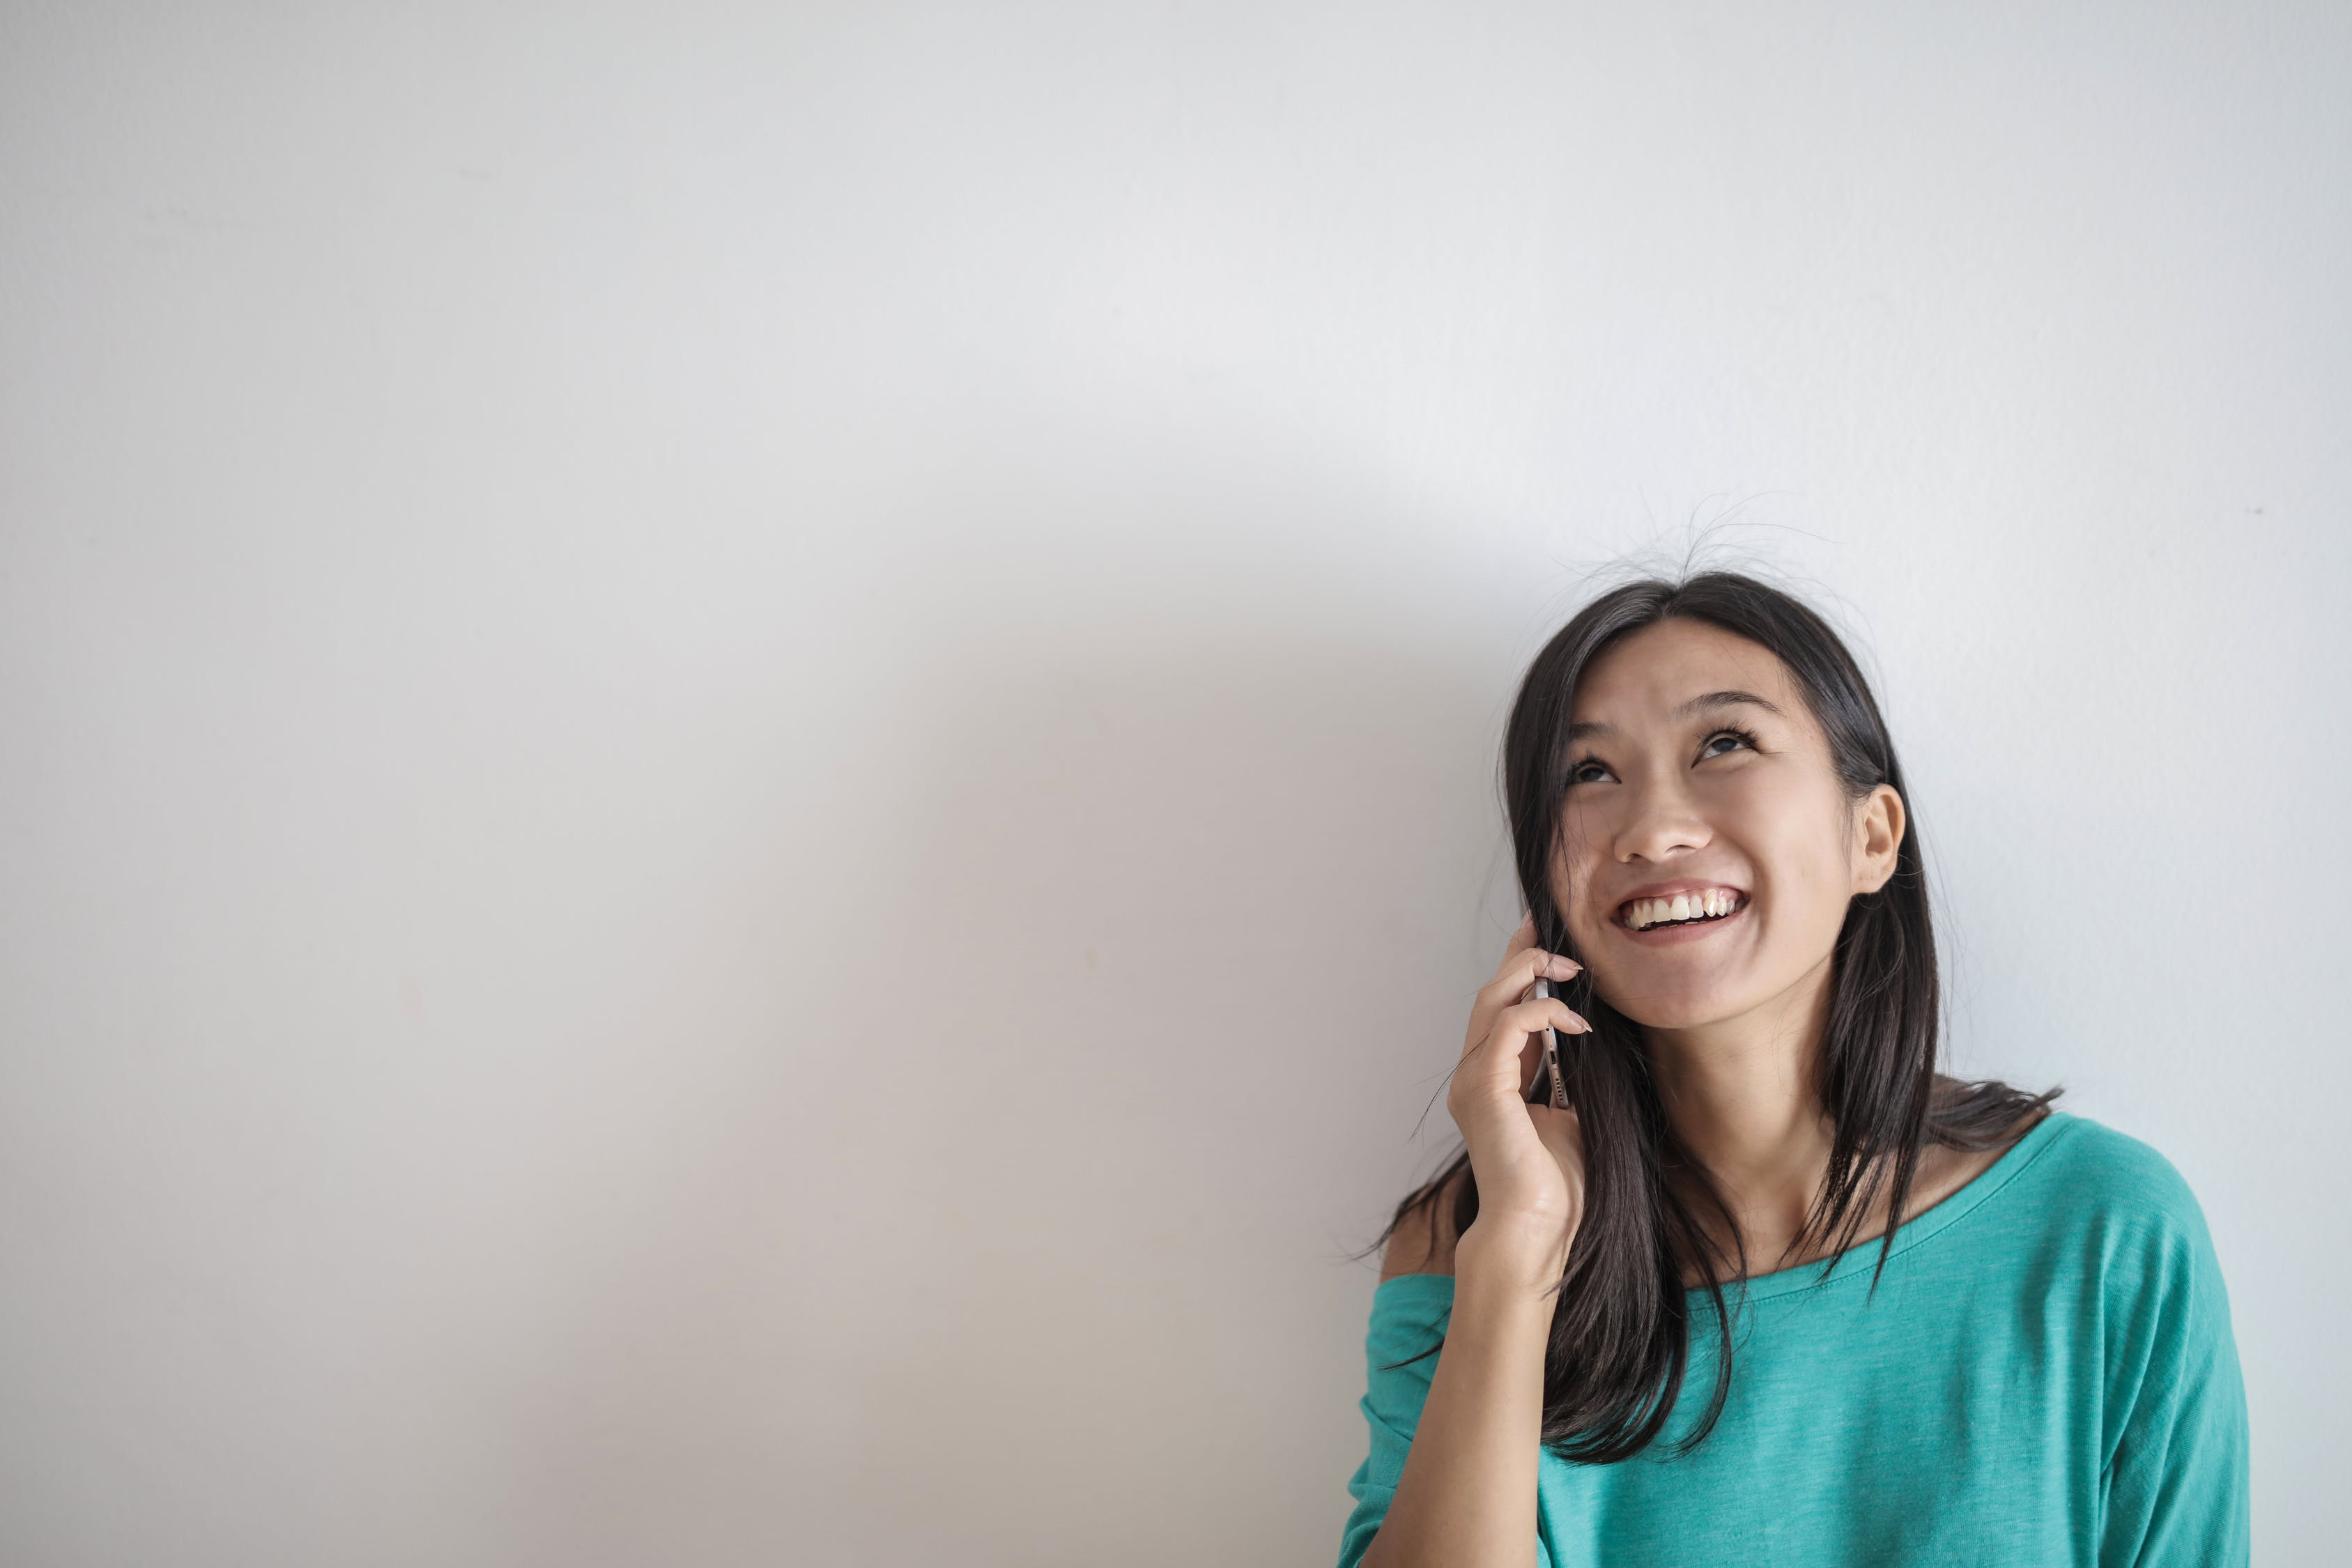 A smiling woman holding a phone